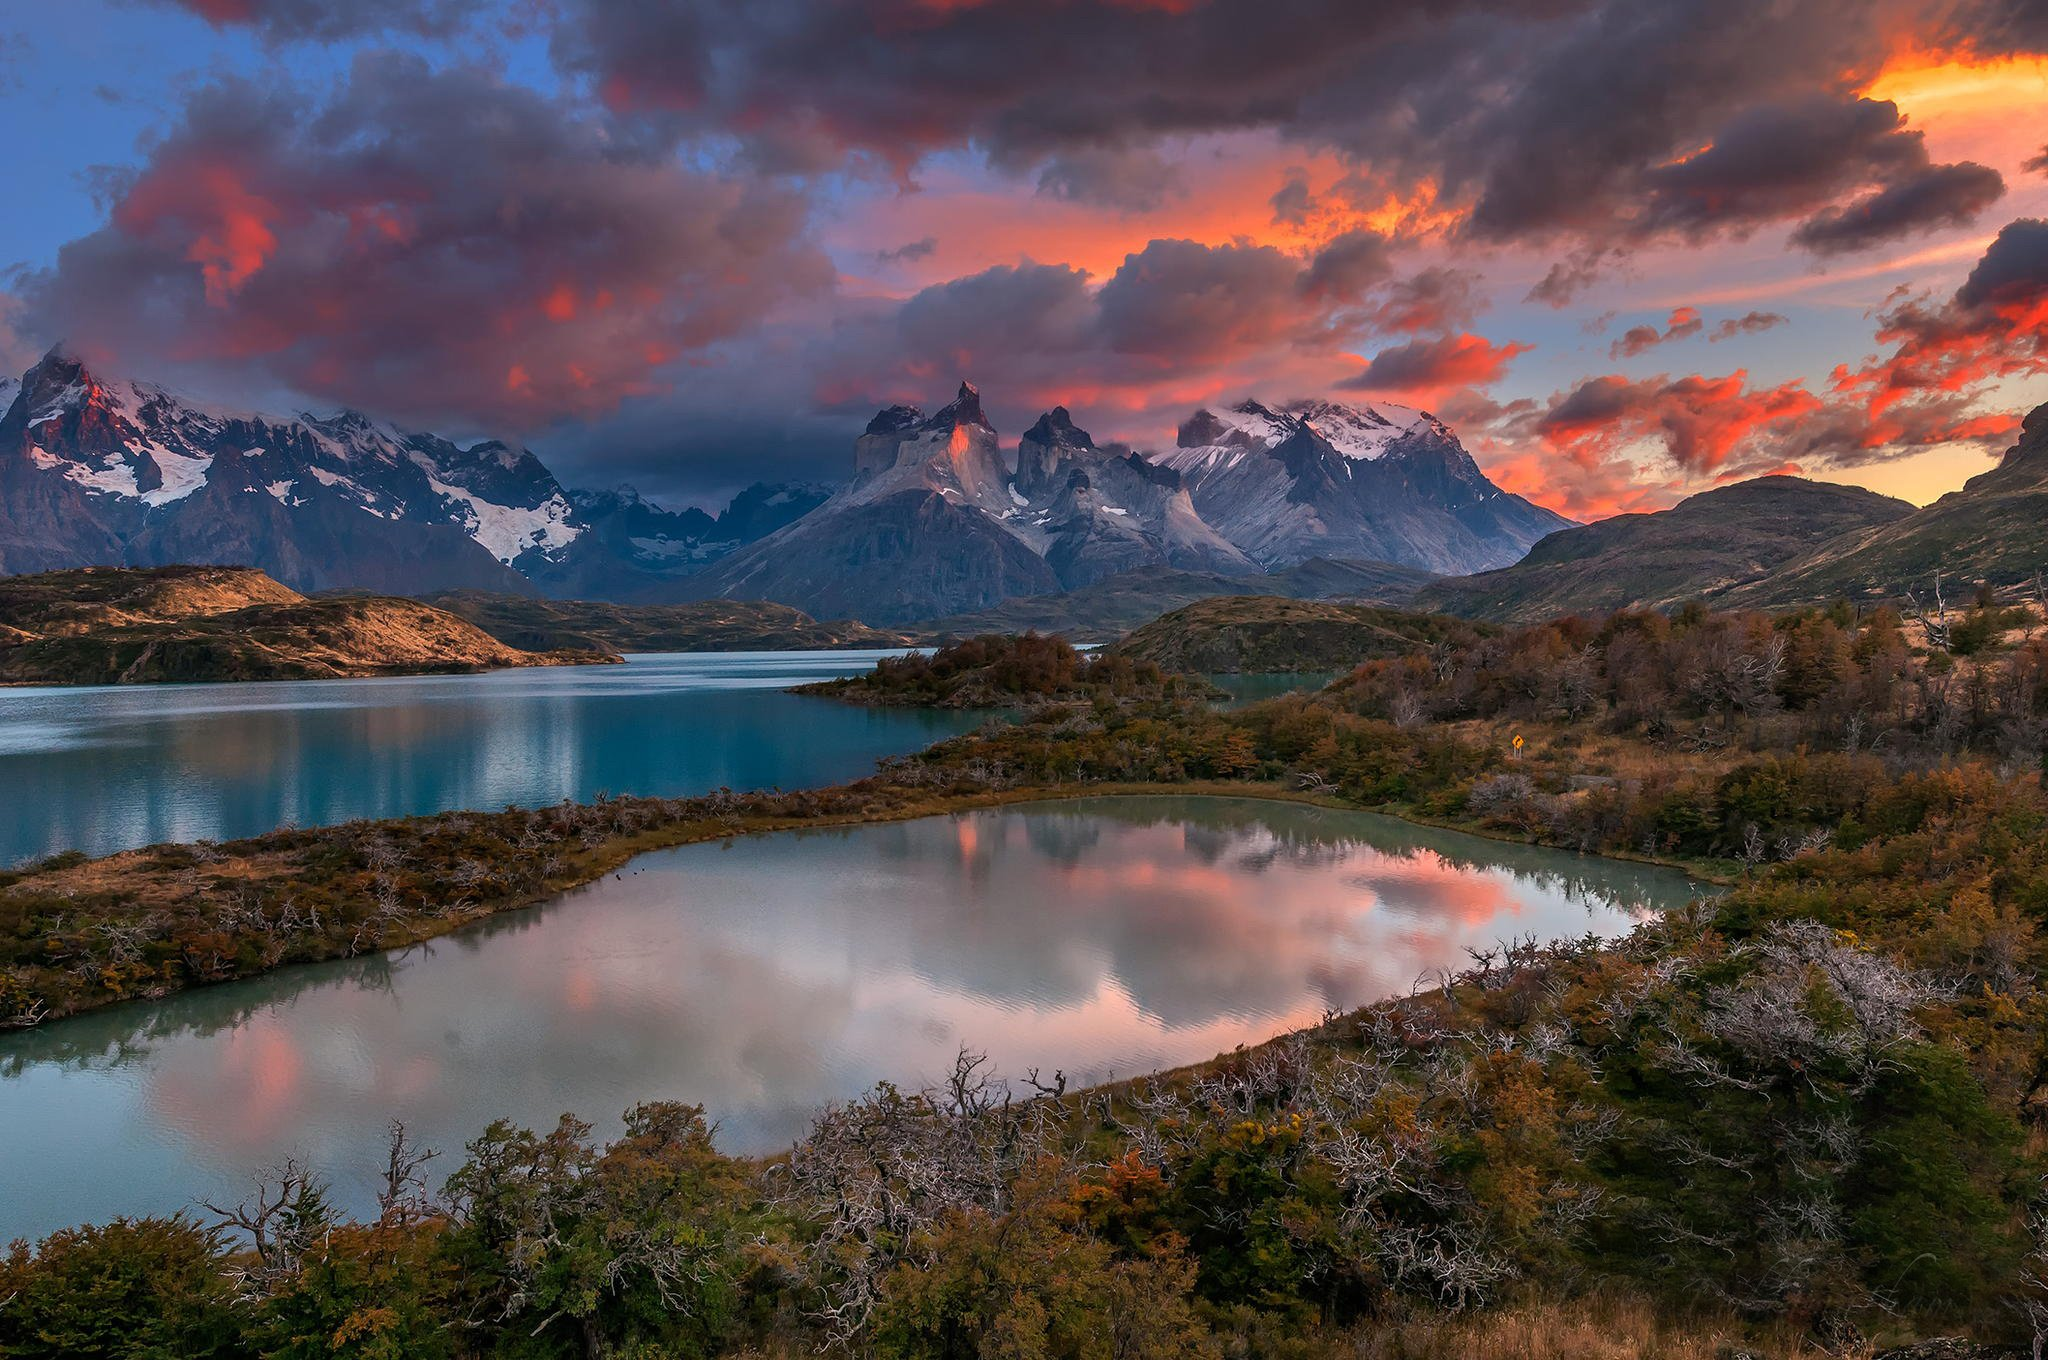 Serene Wallpapers Large Fall Patagonia Chile River Clouds Mountains Wallpaper